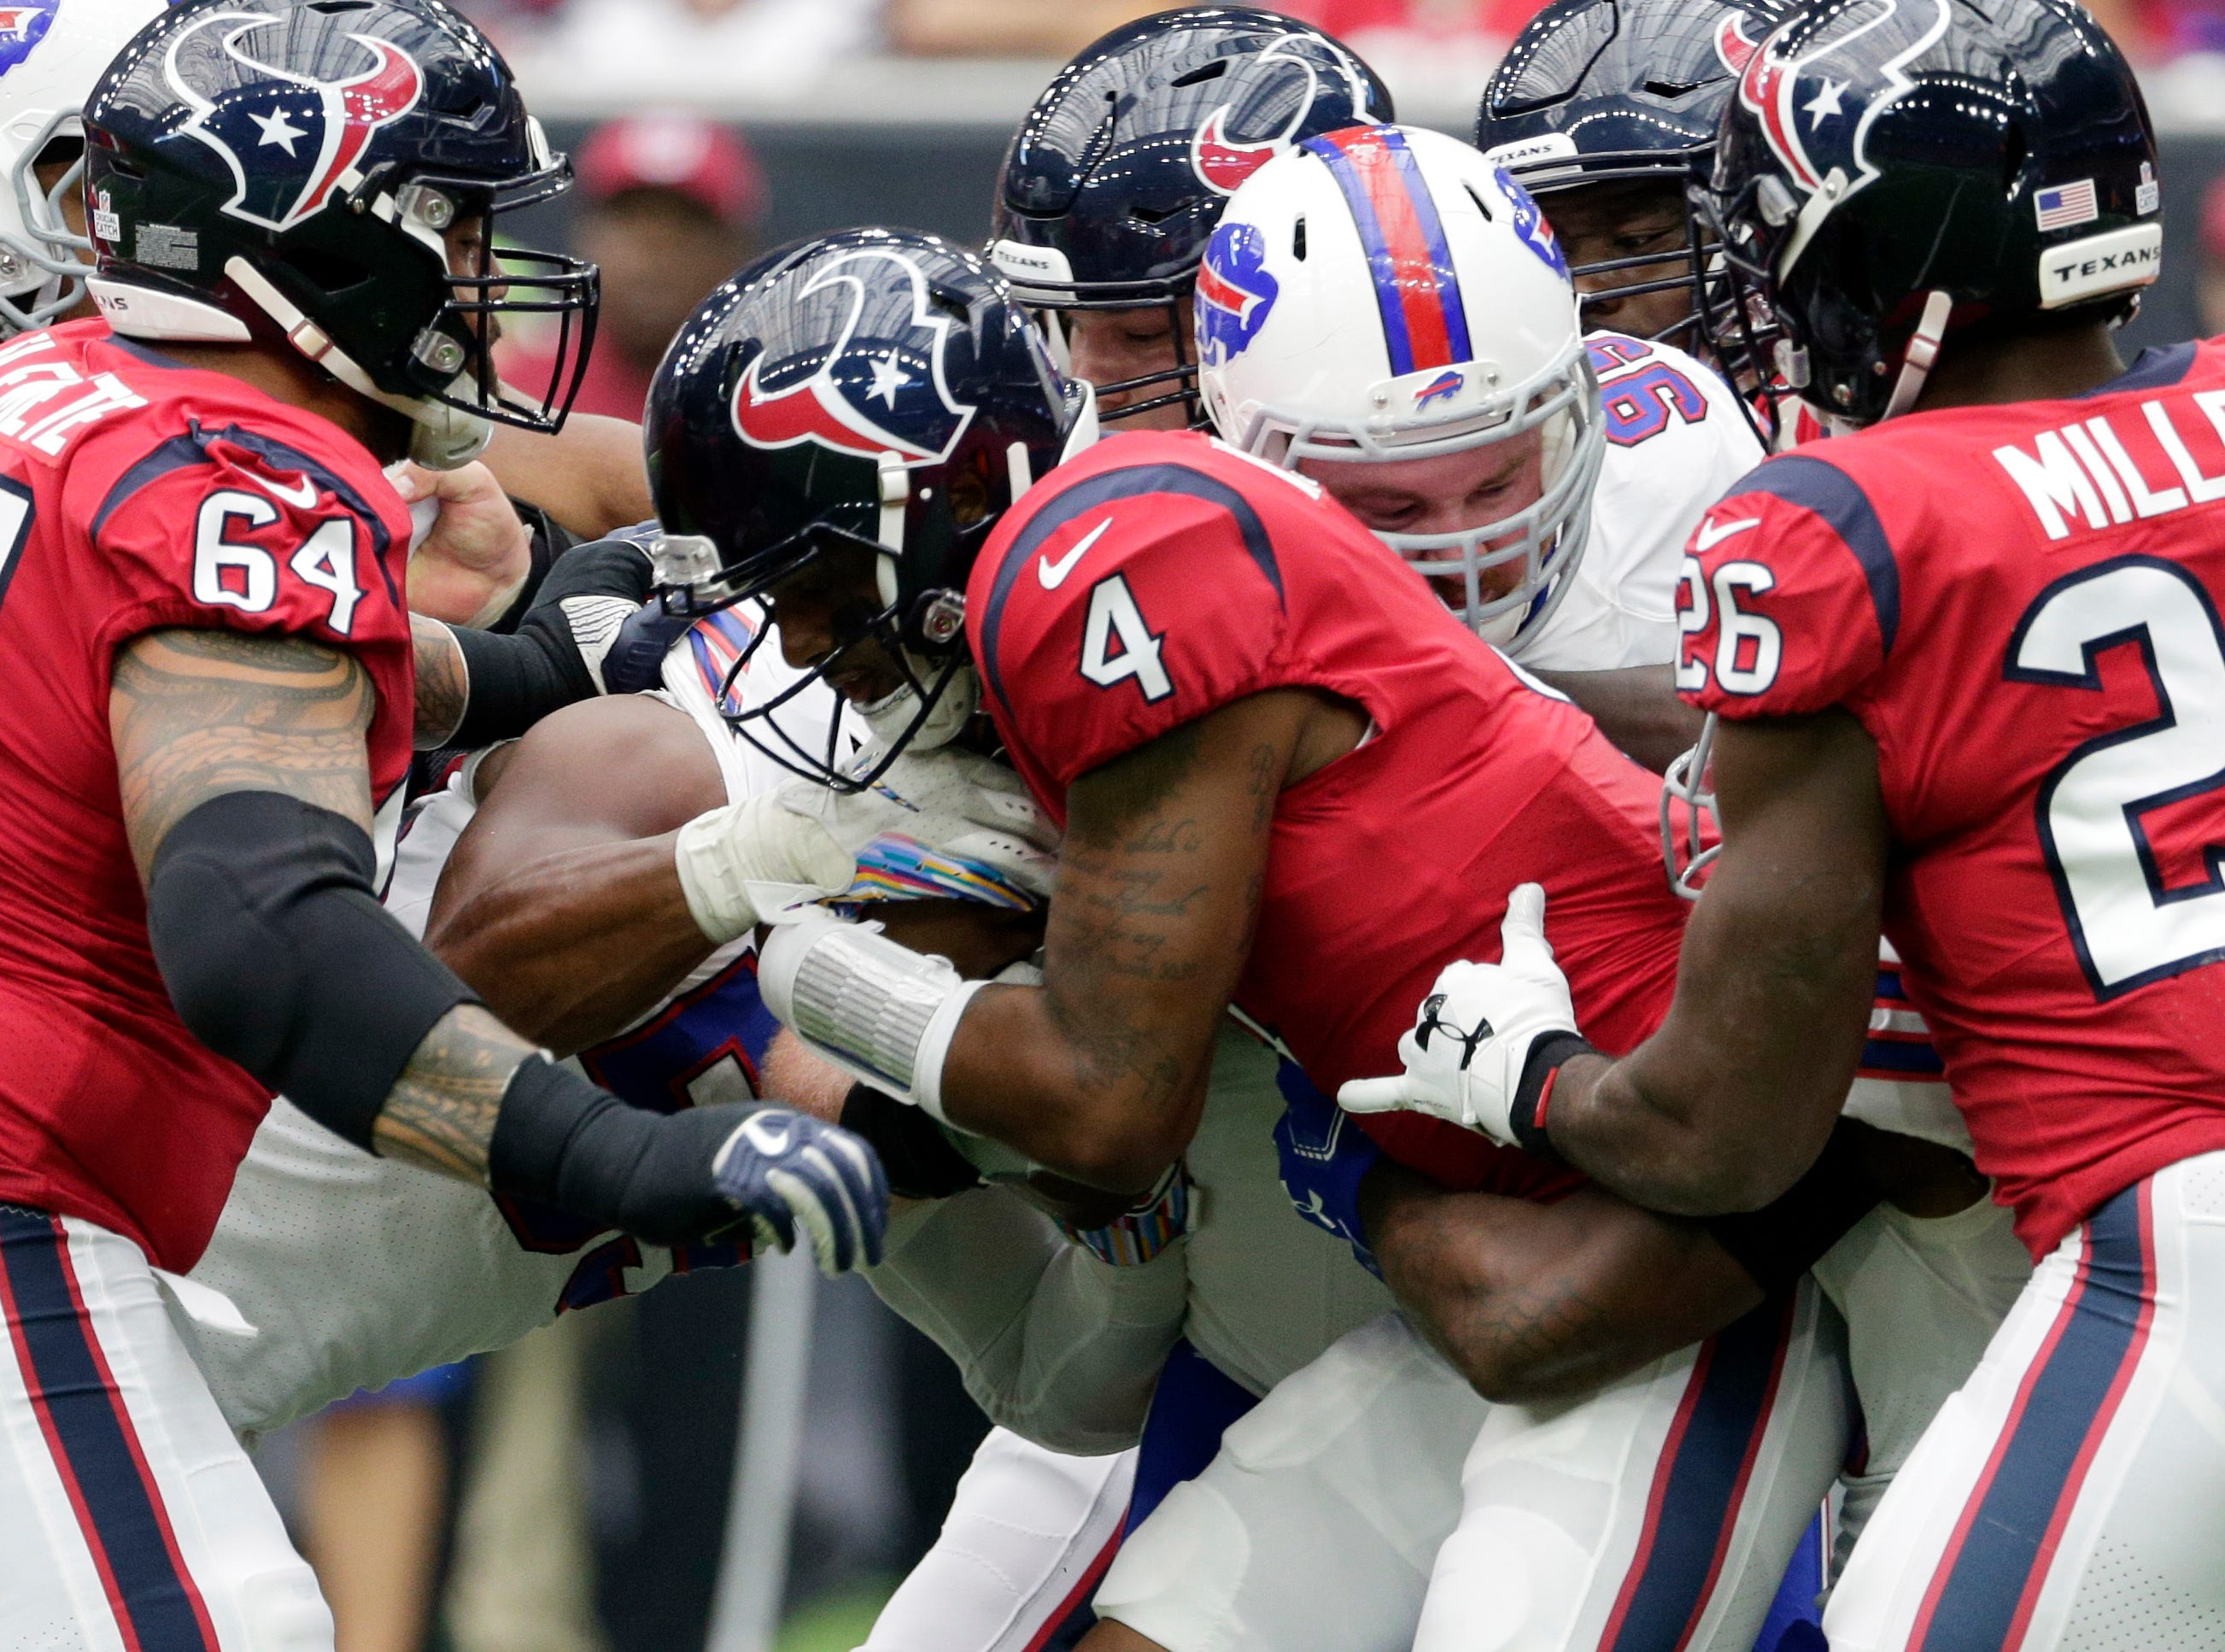 Houston Texans quarterback Deshaun Watson (4) is hit by Buffalo Bills defensive tackle Kyle Williams (95) during the first quarter of an NFL football game, Sunday, Oct. 14, 2018, in Houston. (AP Photo/Michael Wyke)